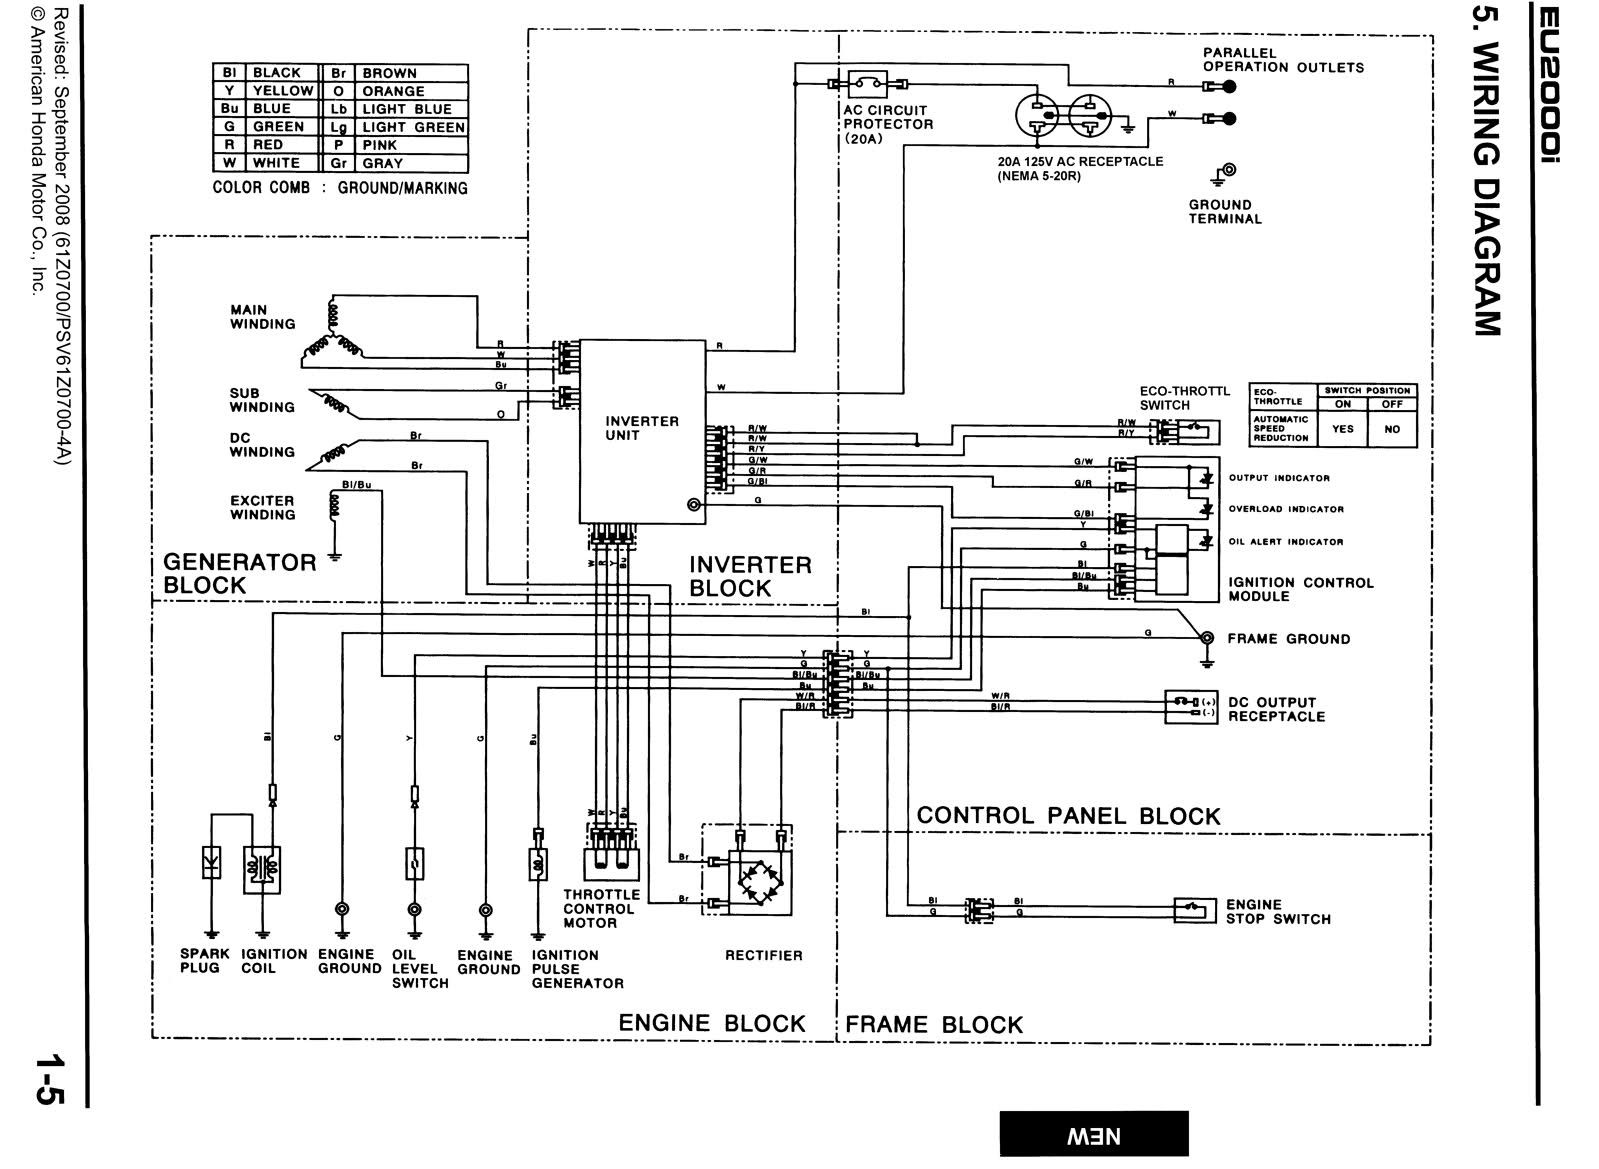 holiday rambler wiring diagrams wiring diagram structures 2004 ford escape wiring harness nowyaknow [ 1599 x 1169 Pixel ]